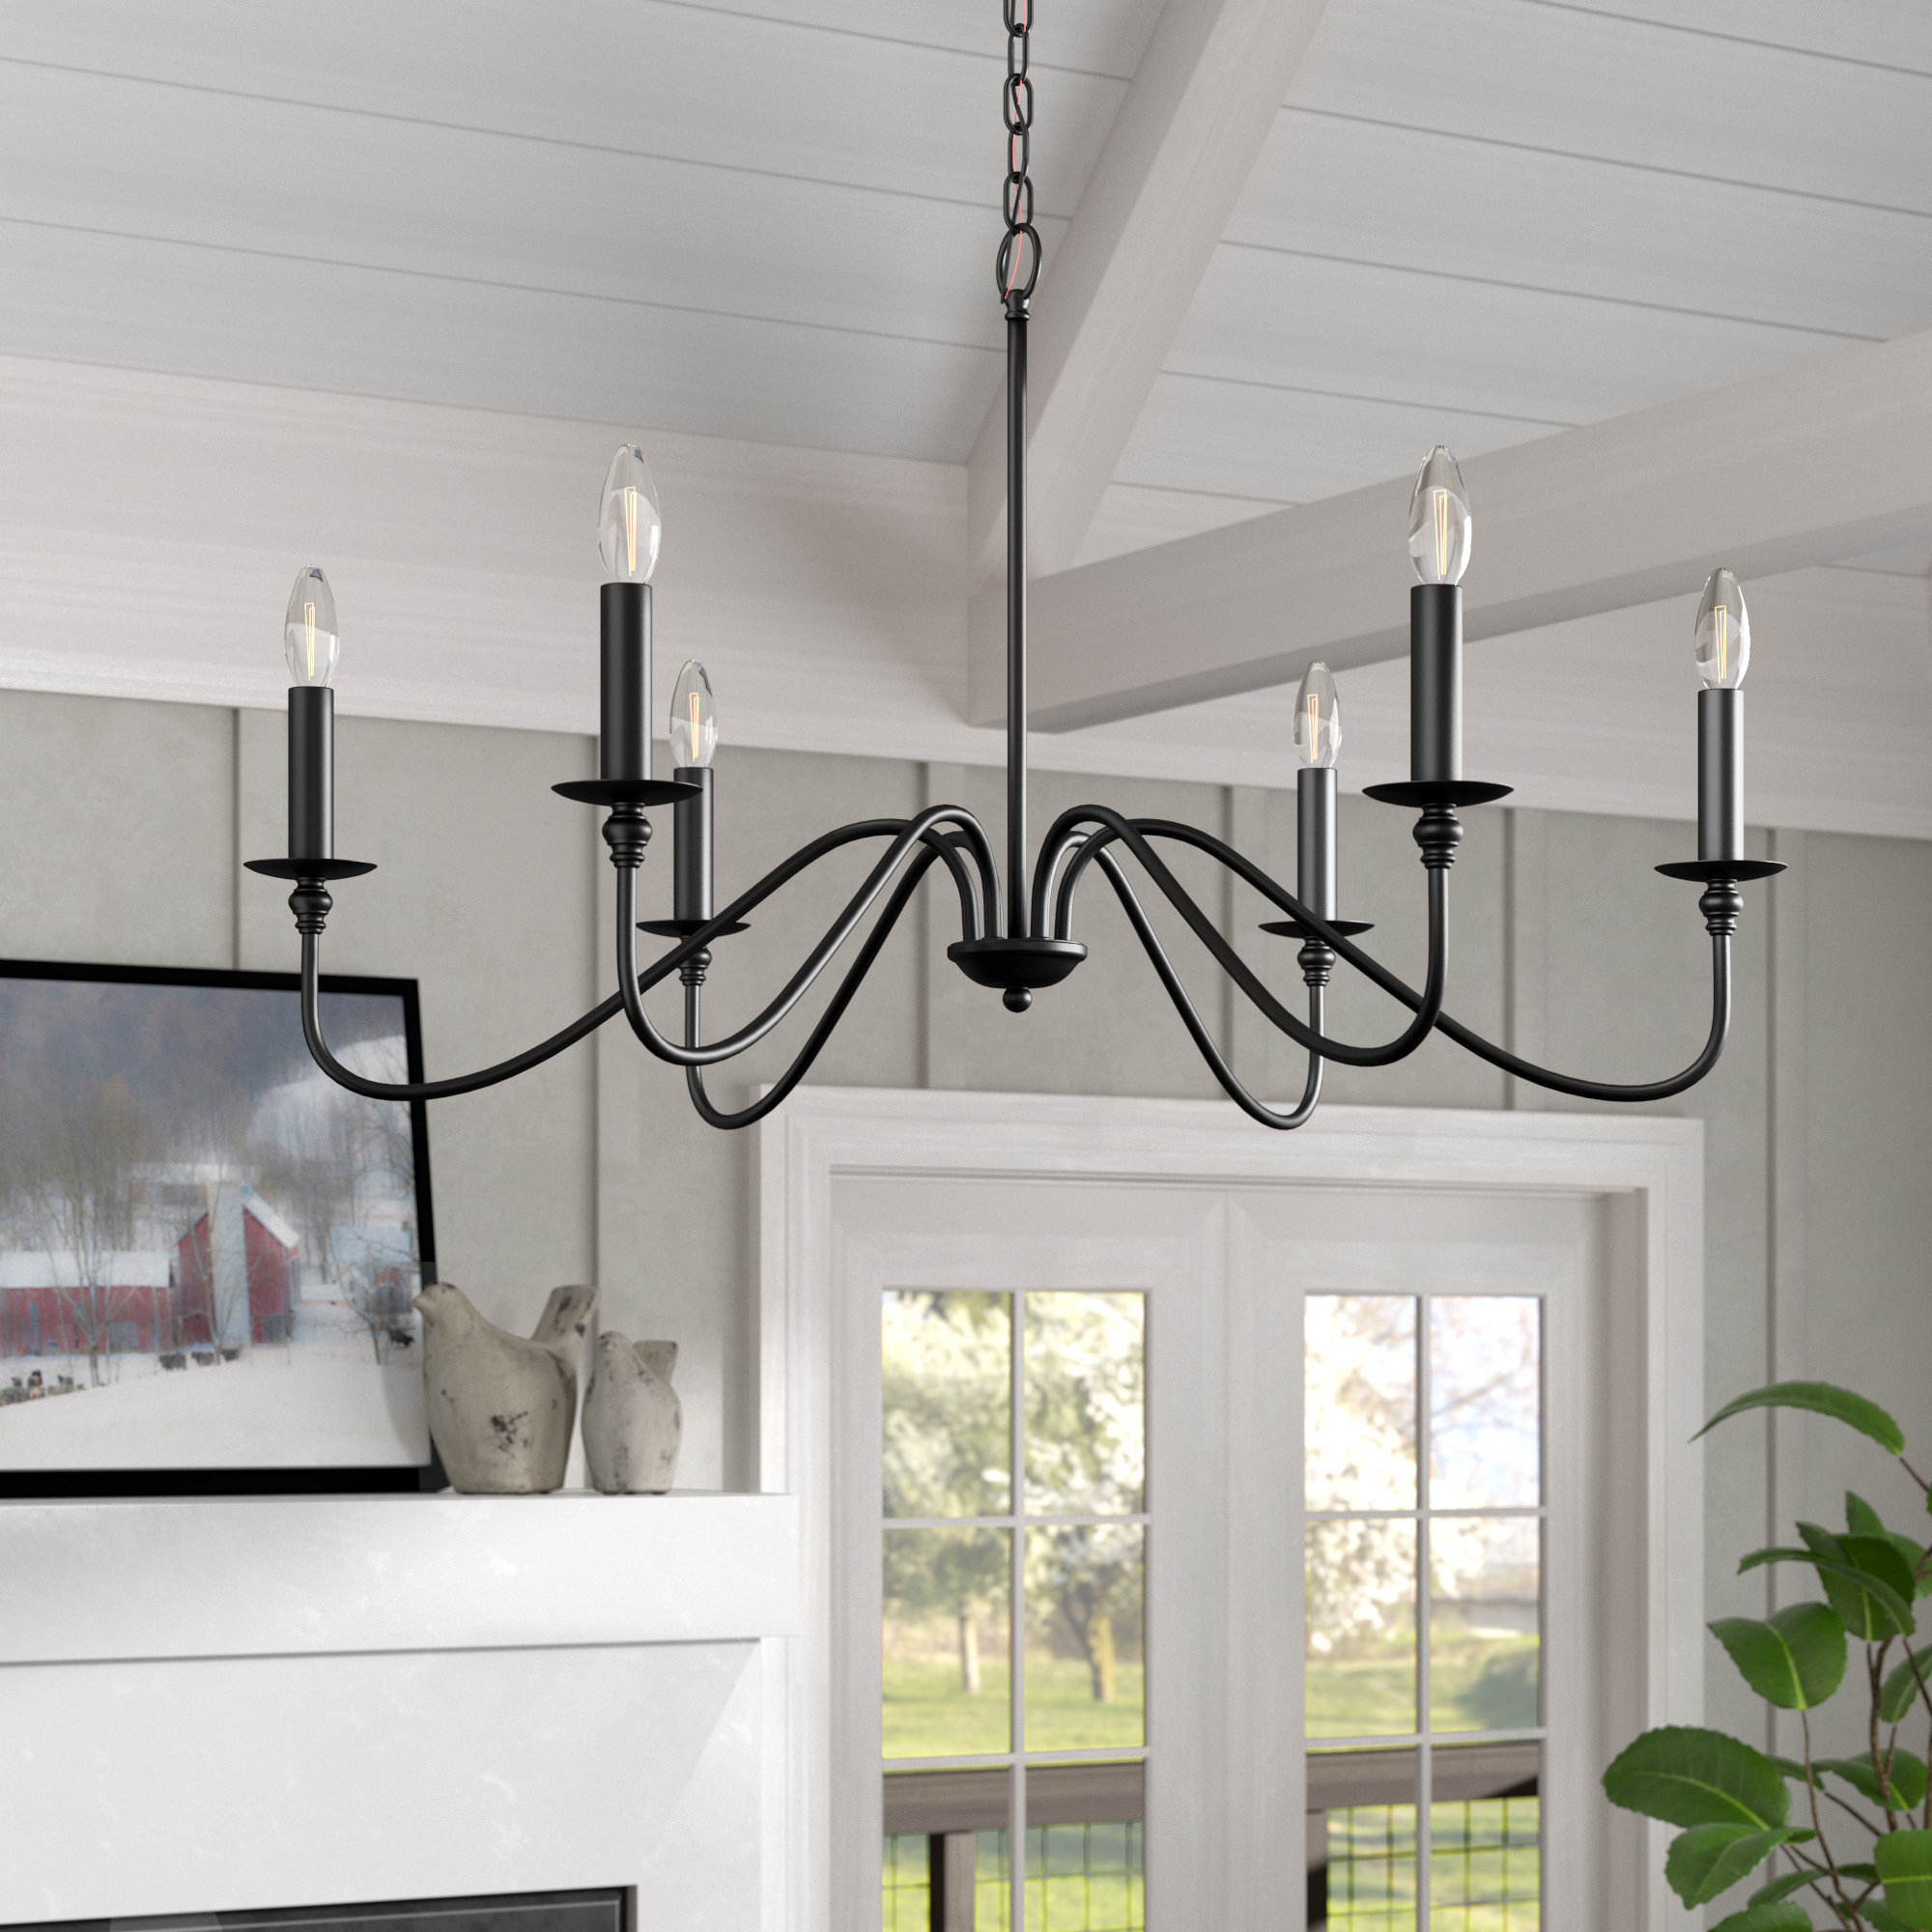 Hamza 6 Light Candle Style Chandelier For Widely Used Diaz 6 Light Candle Style Chandeliers (View 13 of 20)